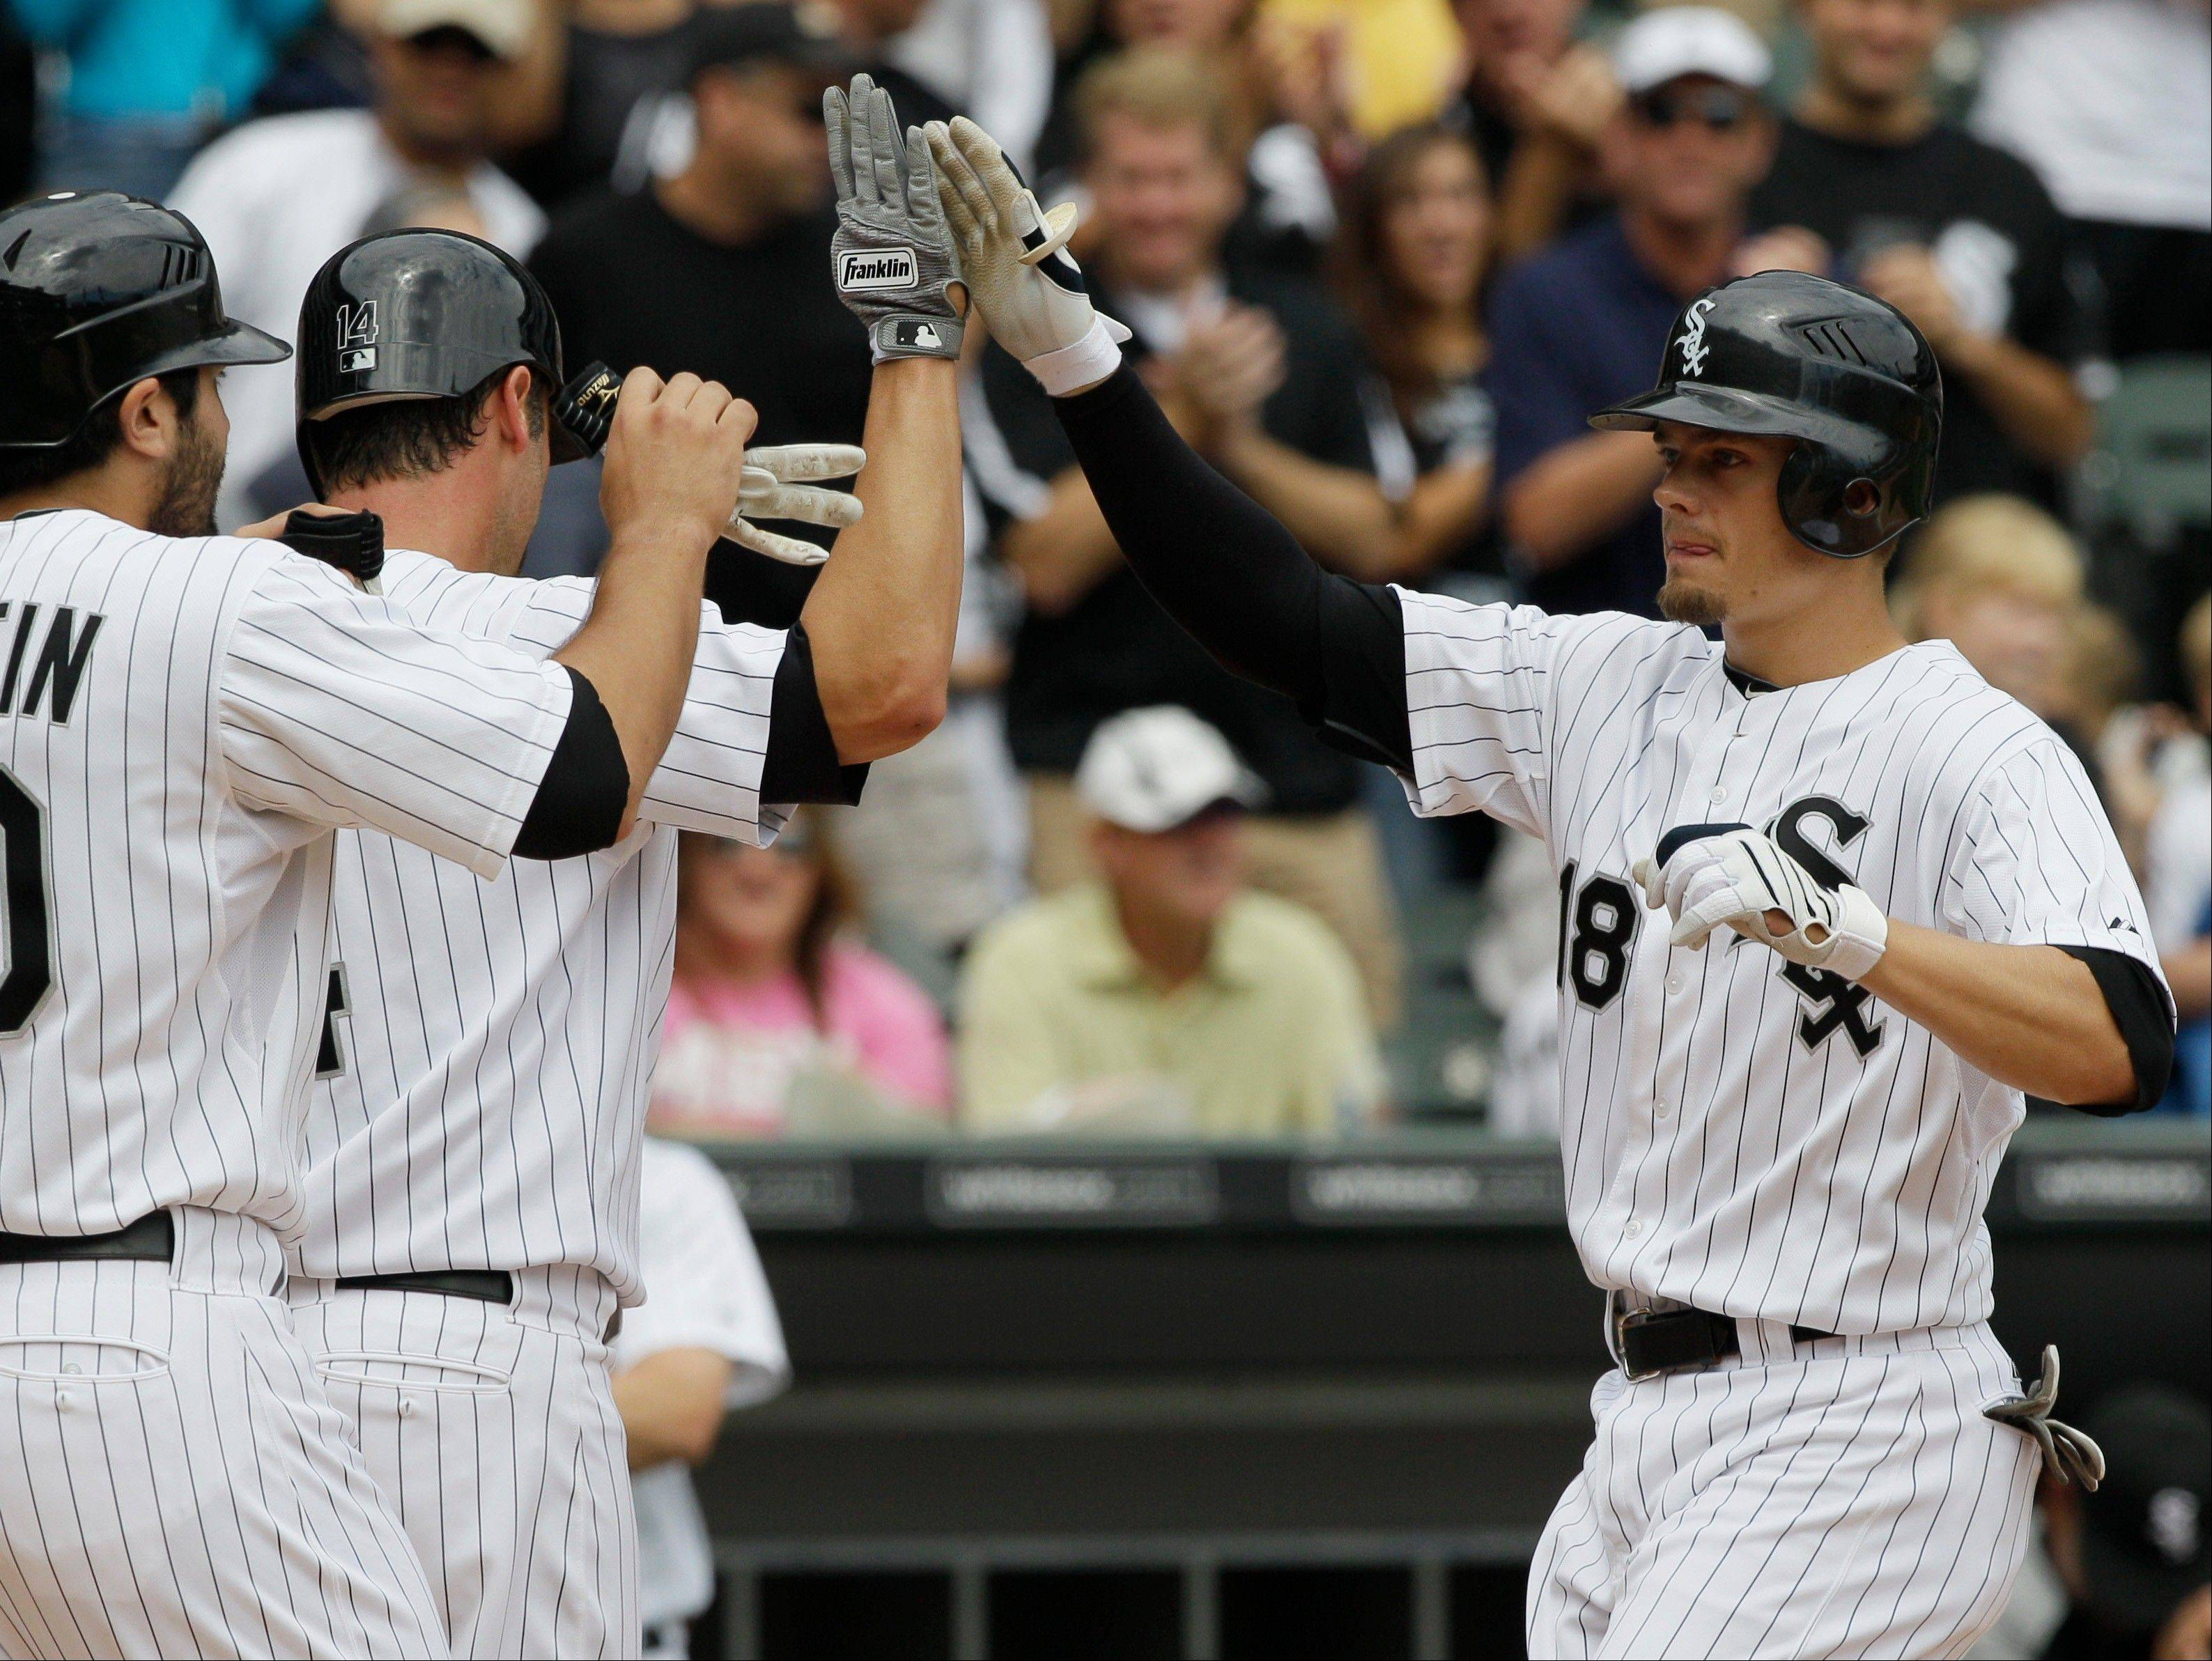 Brent Lillibridge, right, celebrates with Paul Konerko, middle, and Carlos Quentin after hitting a 3-run homer in the first inning Sunday.